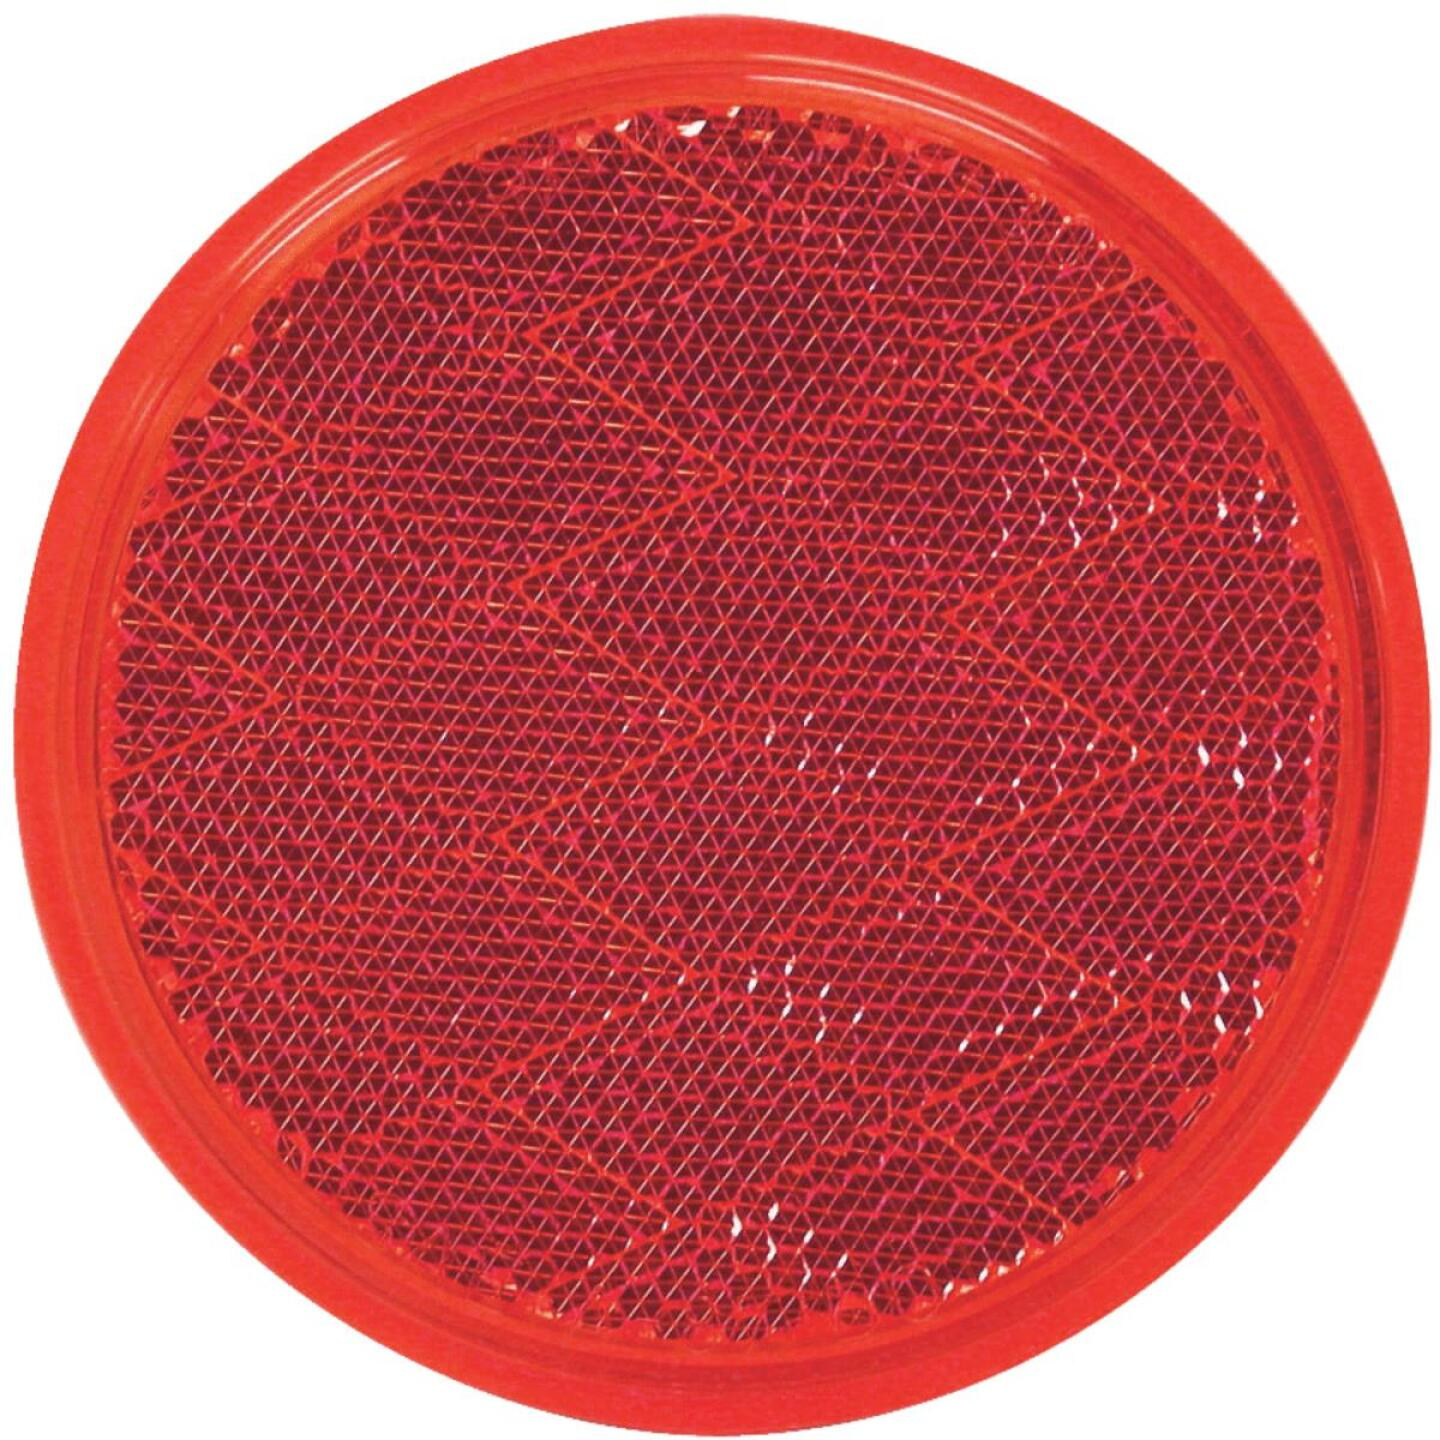 Peterson 3 In. Dia. Round Red Quick-Mount Reflector Image 1